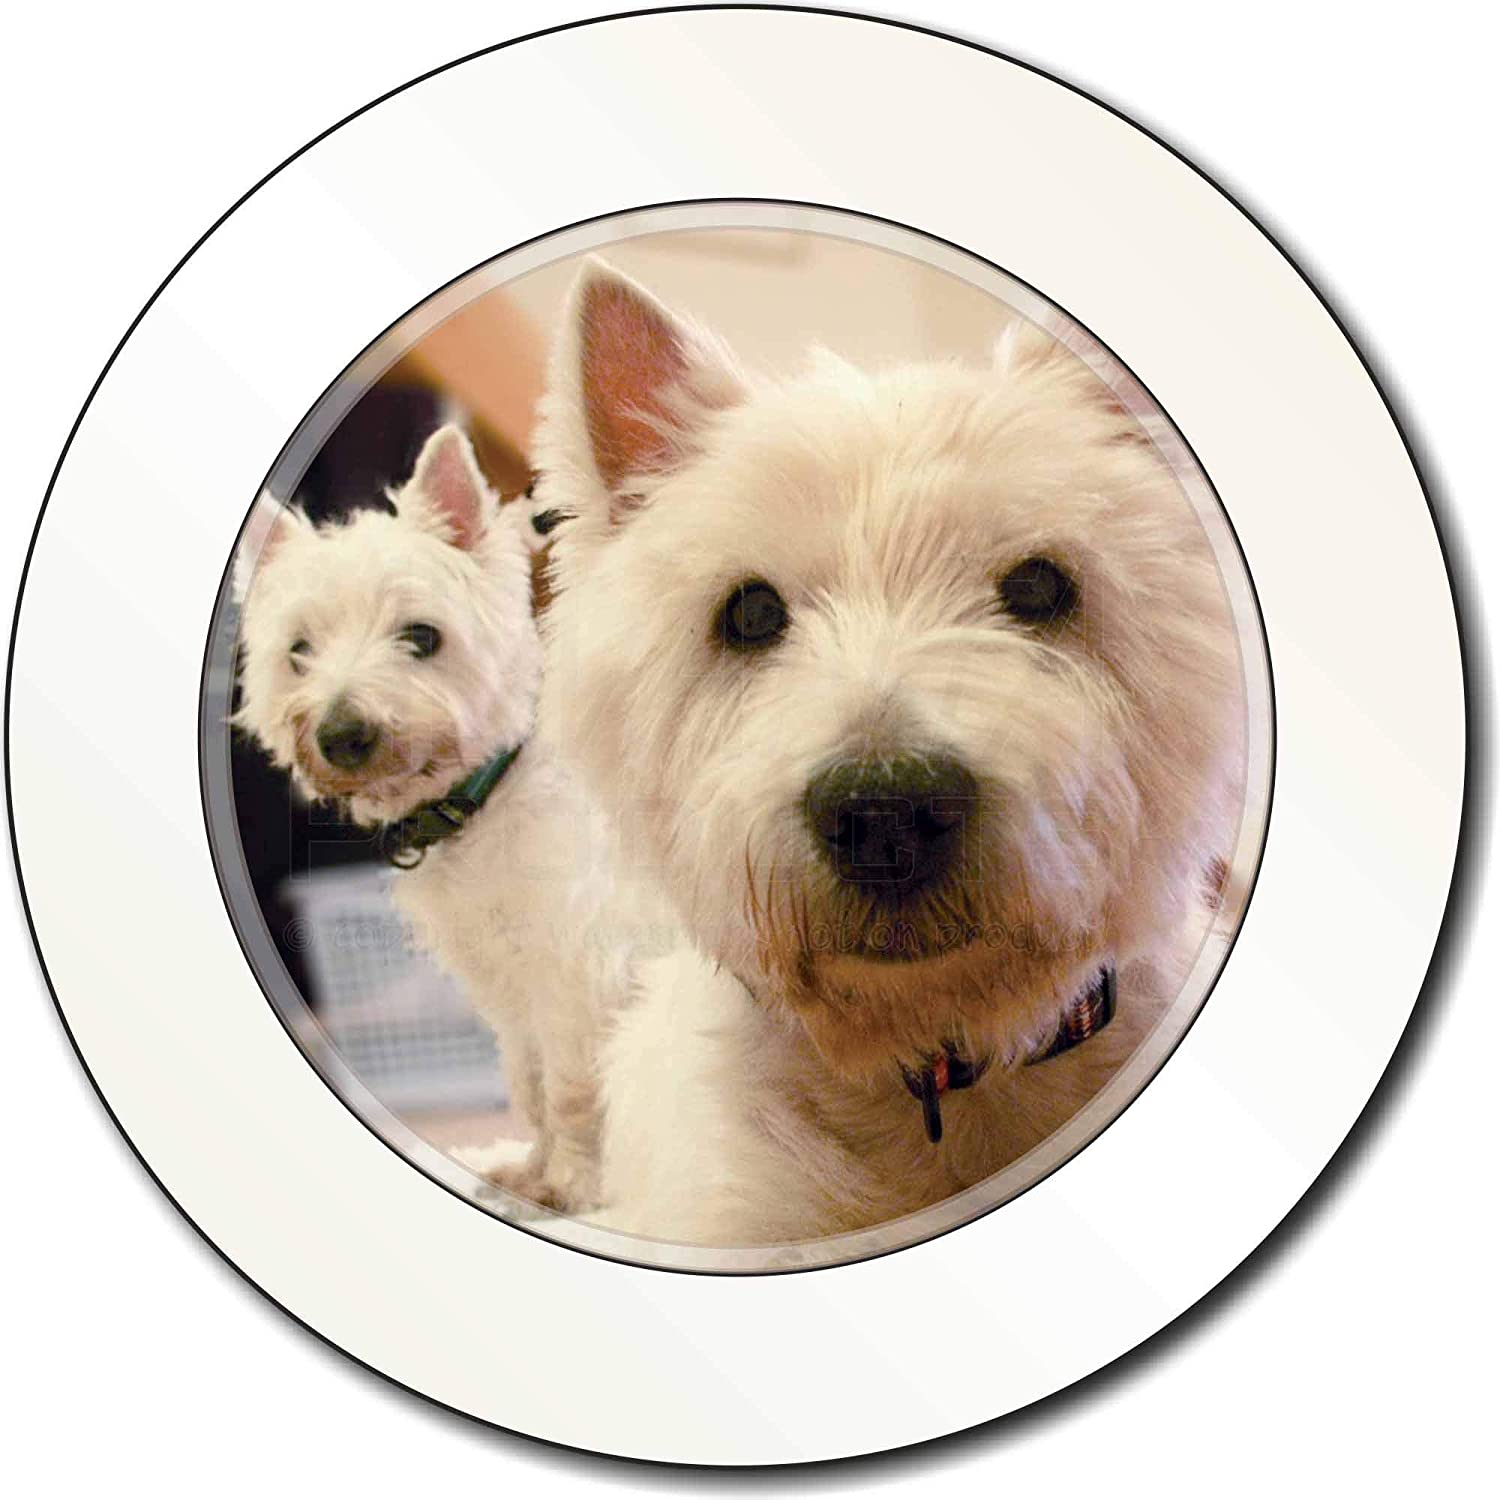 West Highland Terrier Dogs Car Tax Disc Holder New Animal Ref:AD-W1T